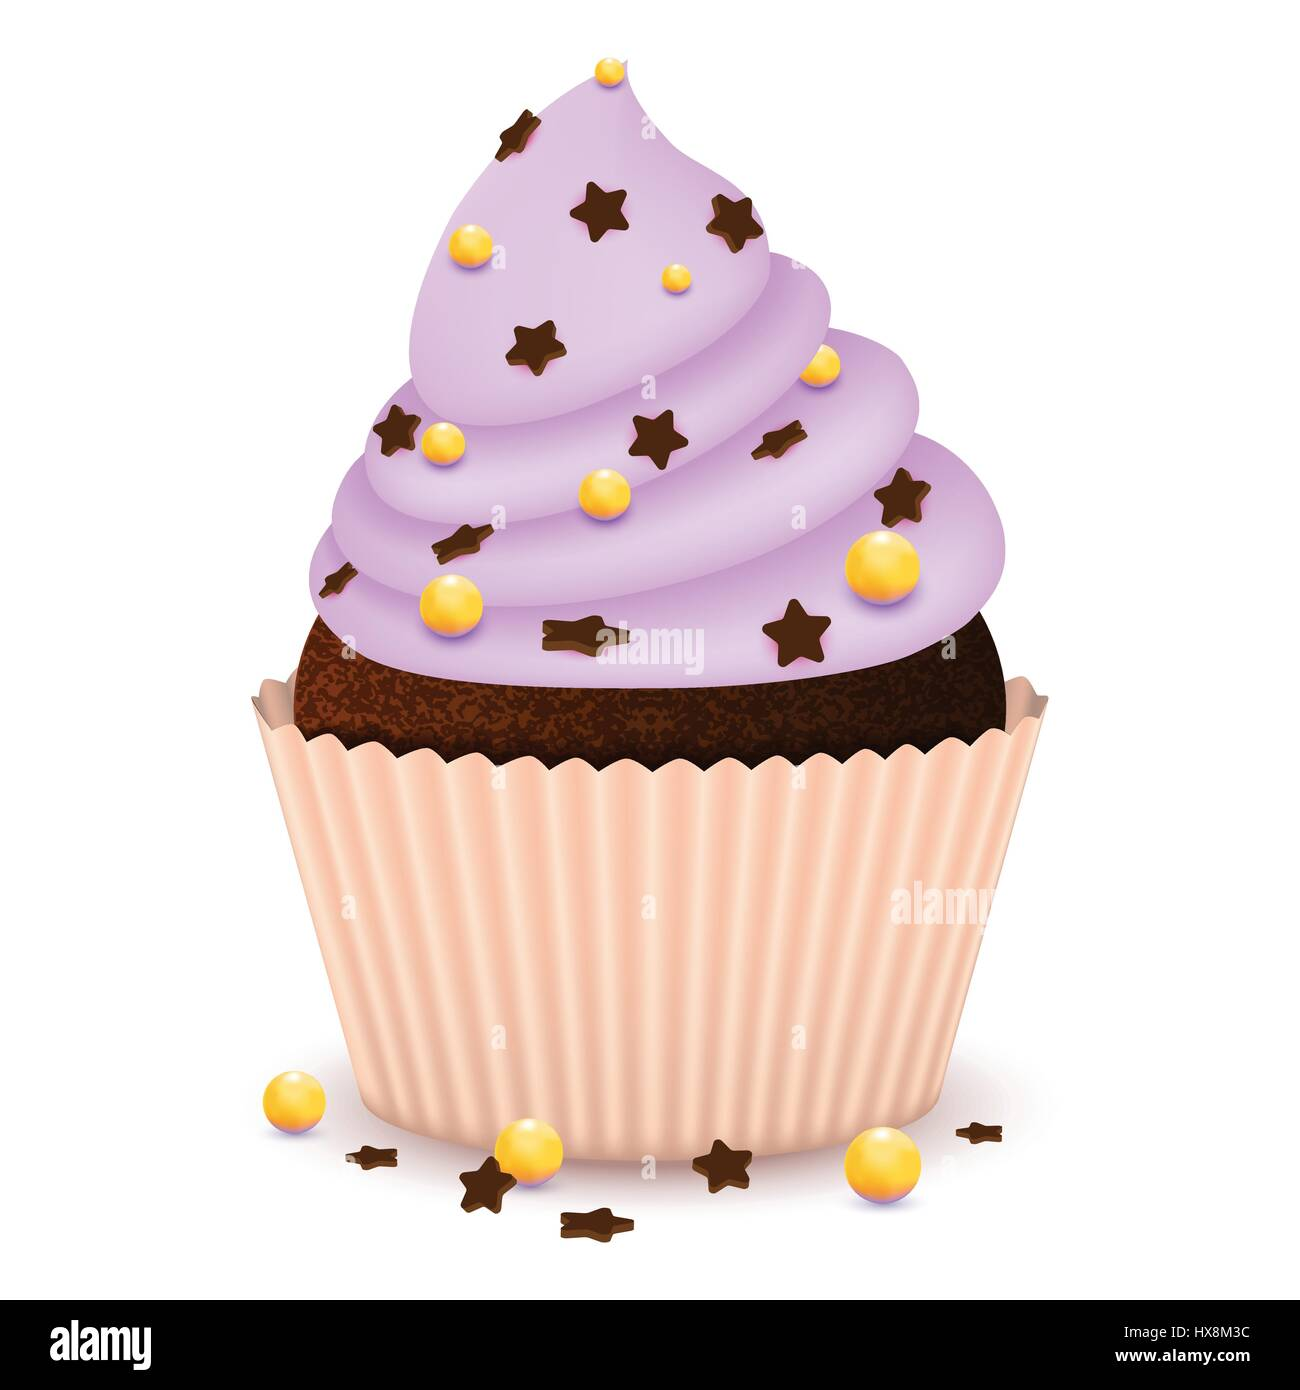 Chocolate cupcake with decorate - Stock Vector